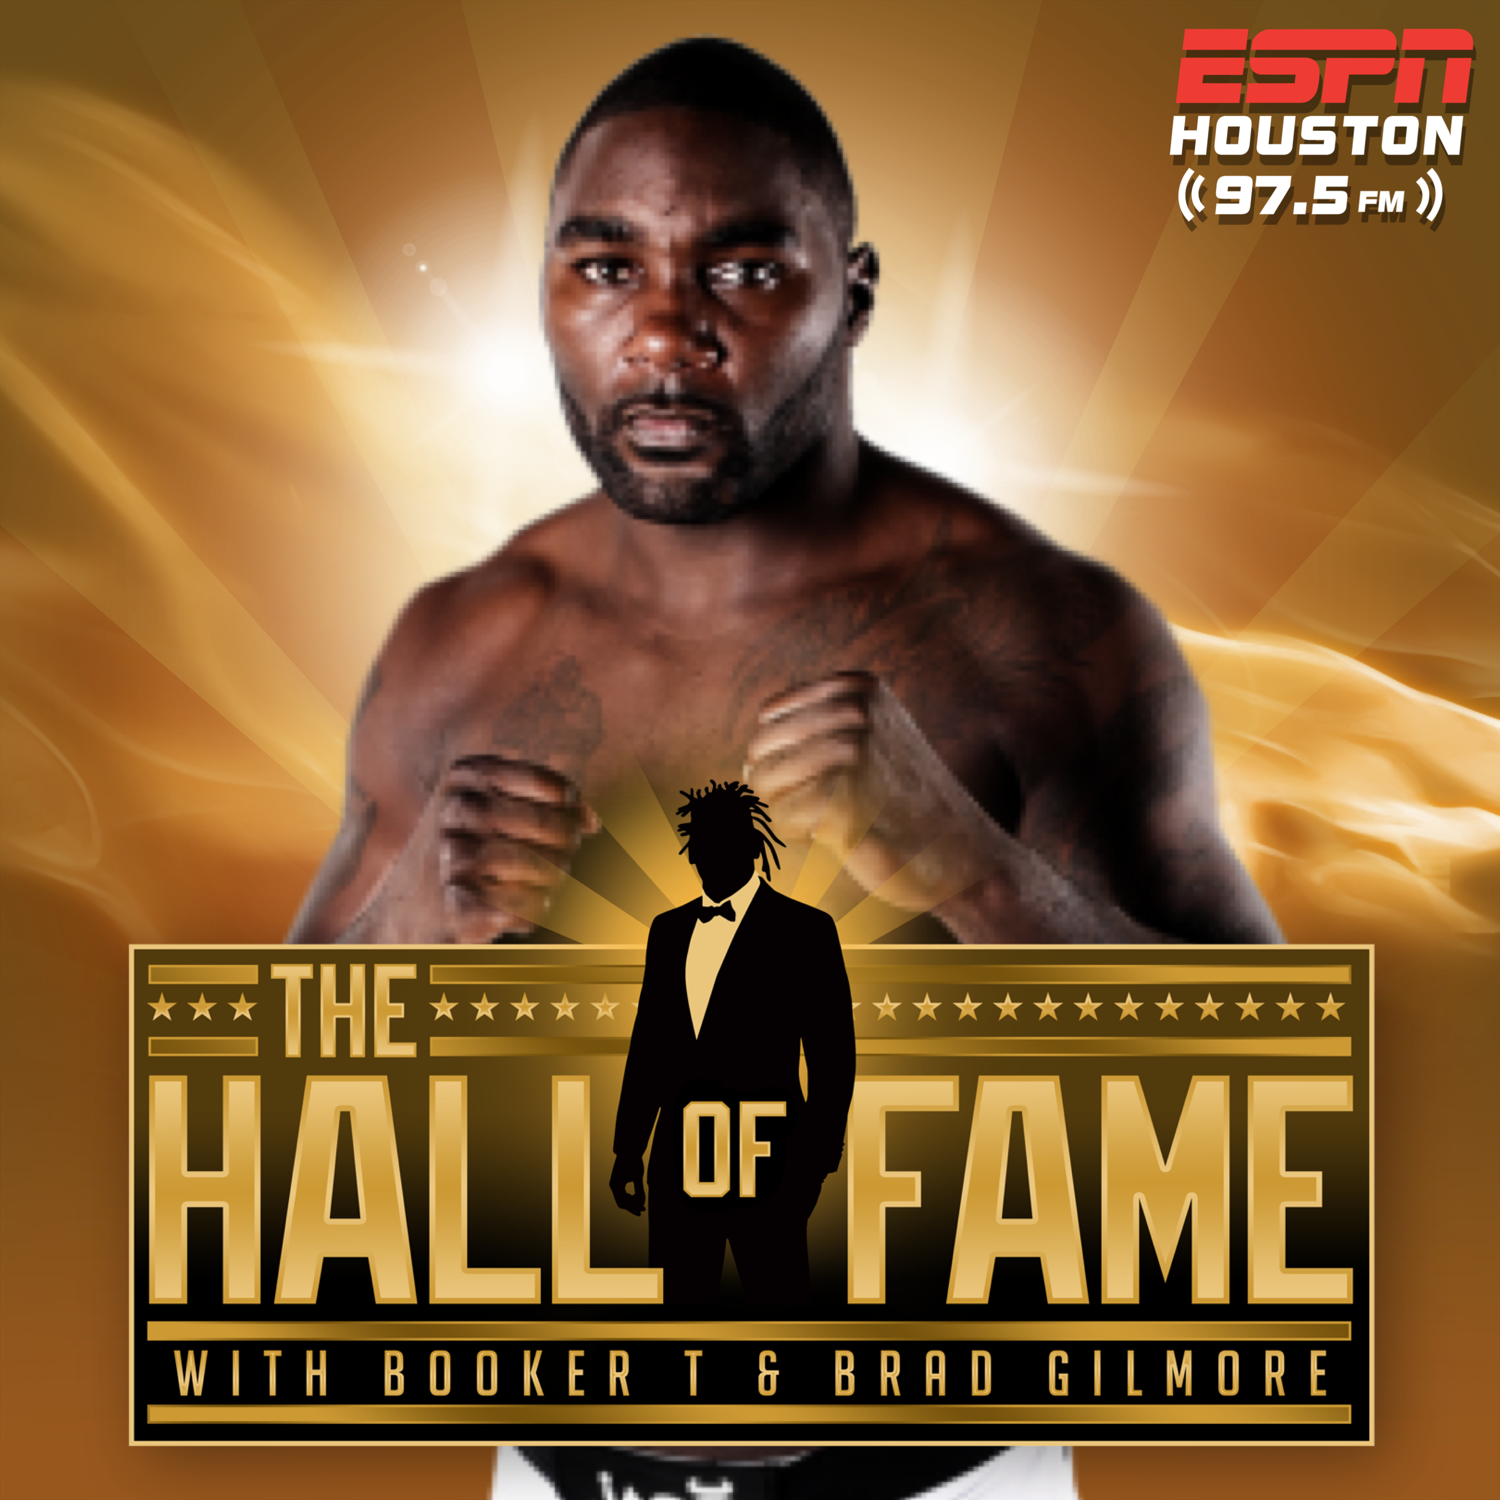 The Hall of Fame with Booker T & Brad Gilmore | Podbay